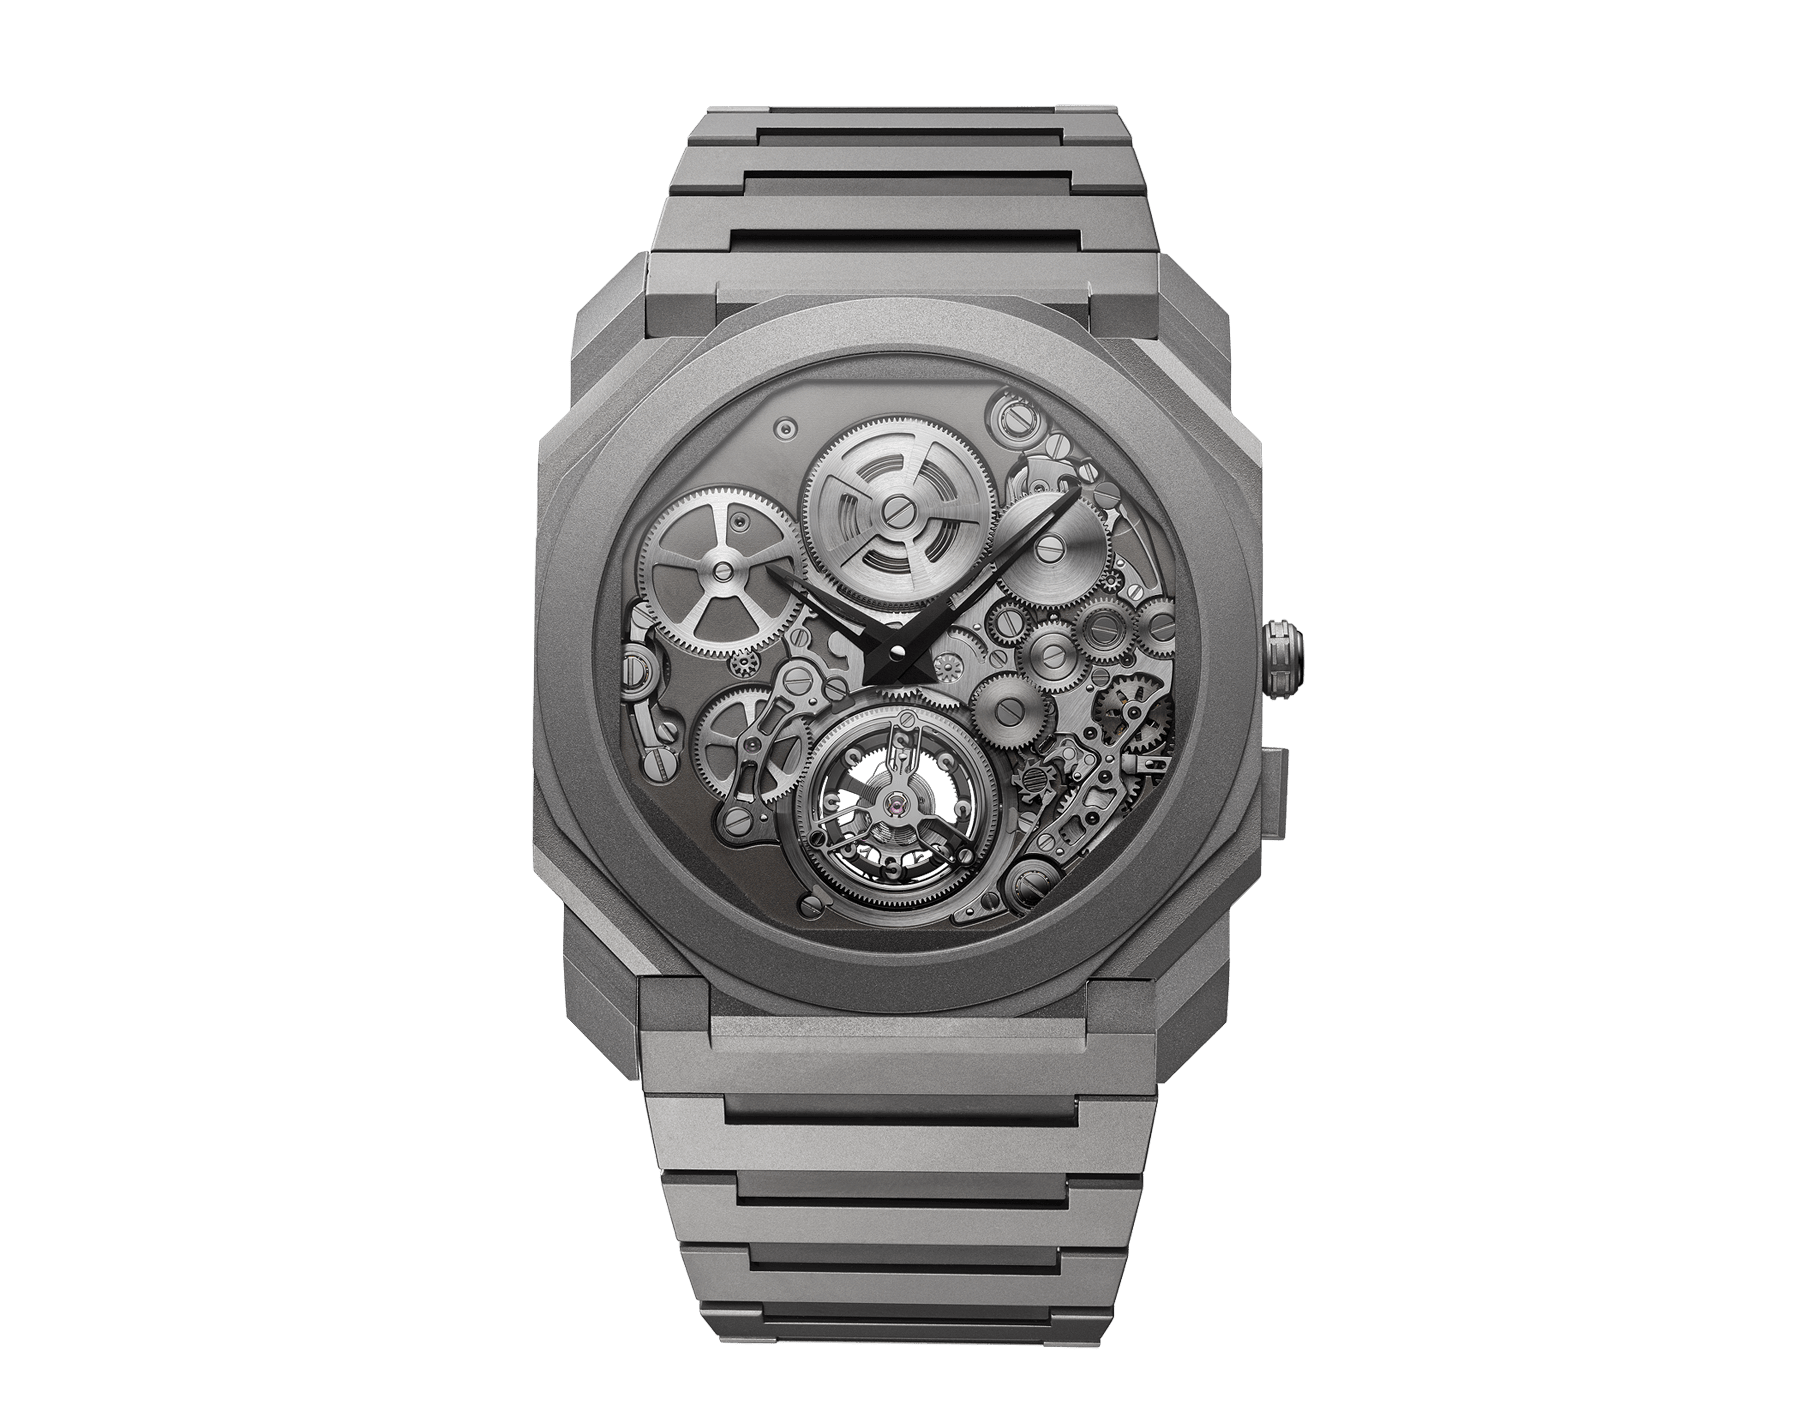 Octo Finissimo Tourbillon Automatic watch with manufacture mechanical movement, ultra-thin flying tourbillon, special ball bearing system, ultra-thin sandblasted titanium case and bracelet, and skeletonized sandblasted titanium dial 102937 image 1